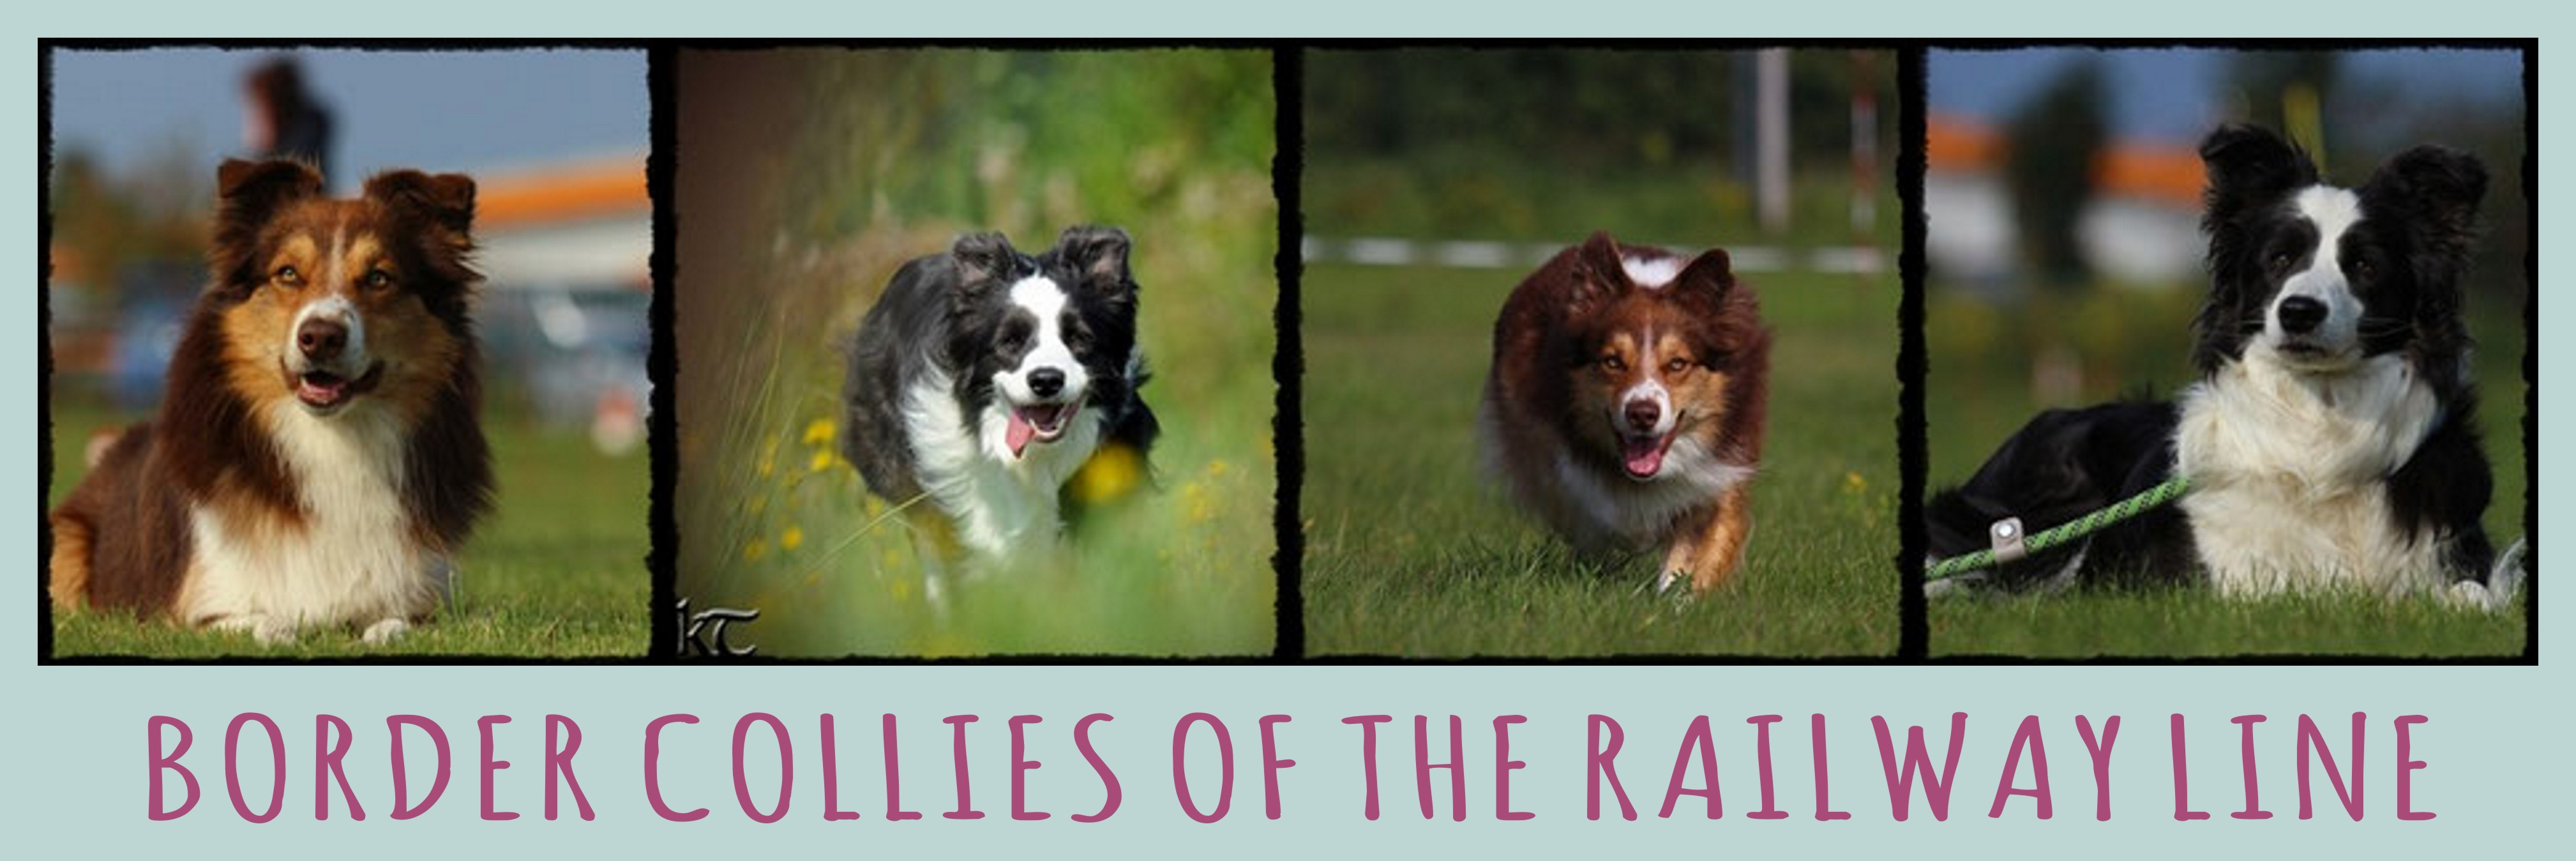 Banner Border Collies of the Railway Line